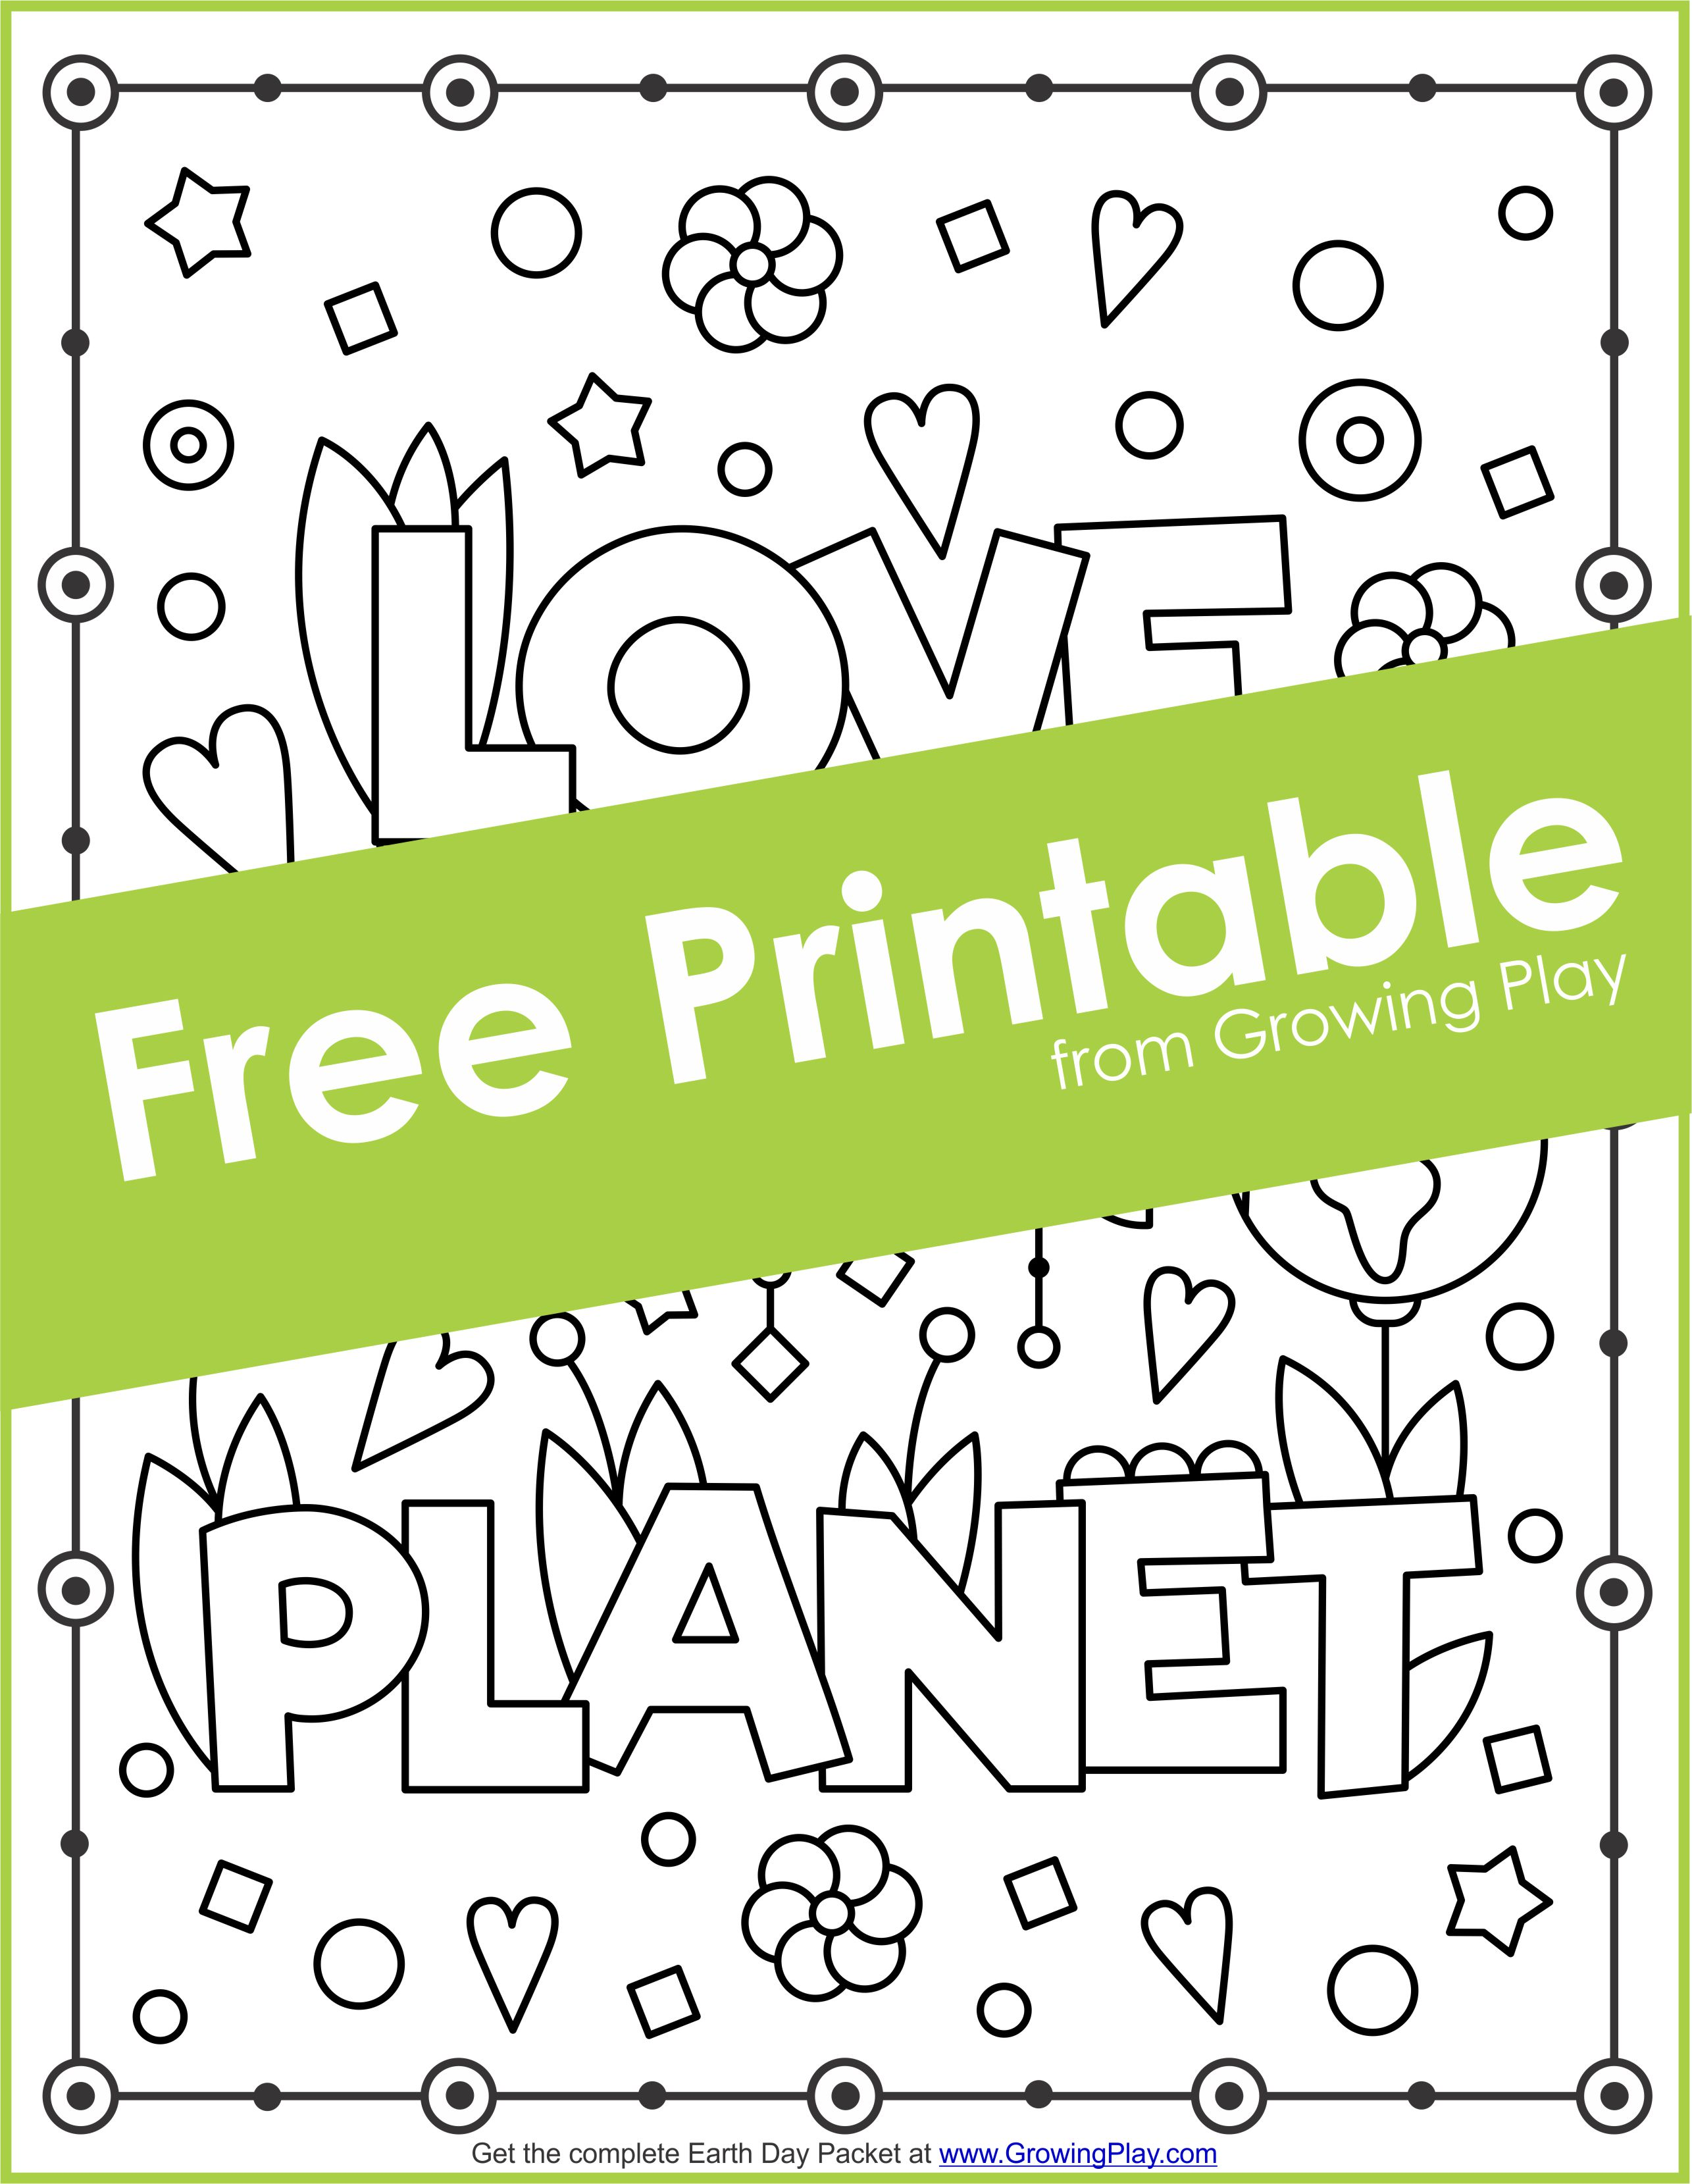 Earth Day Packet - Games, Coloring Pages and Puzzles - Growing Play